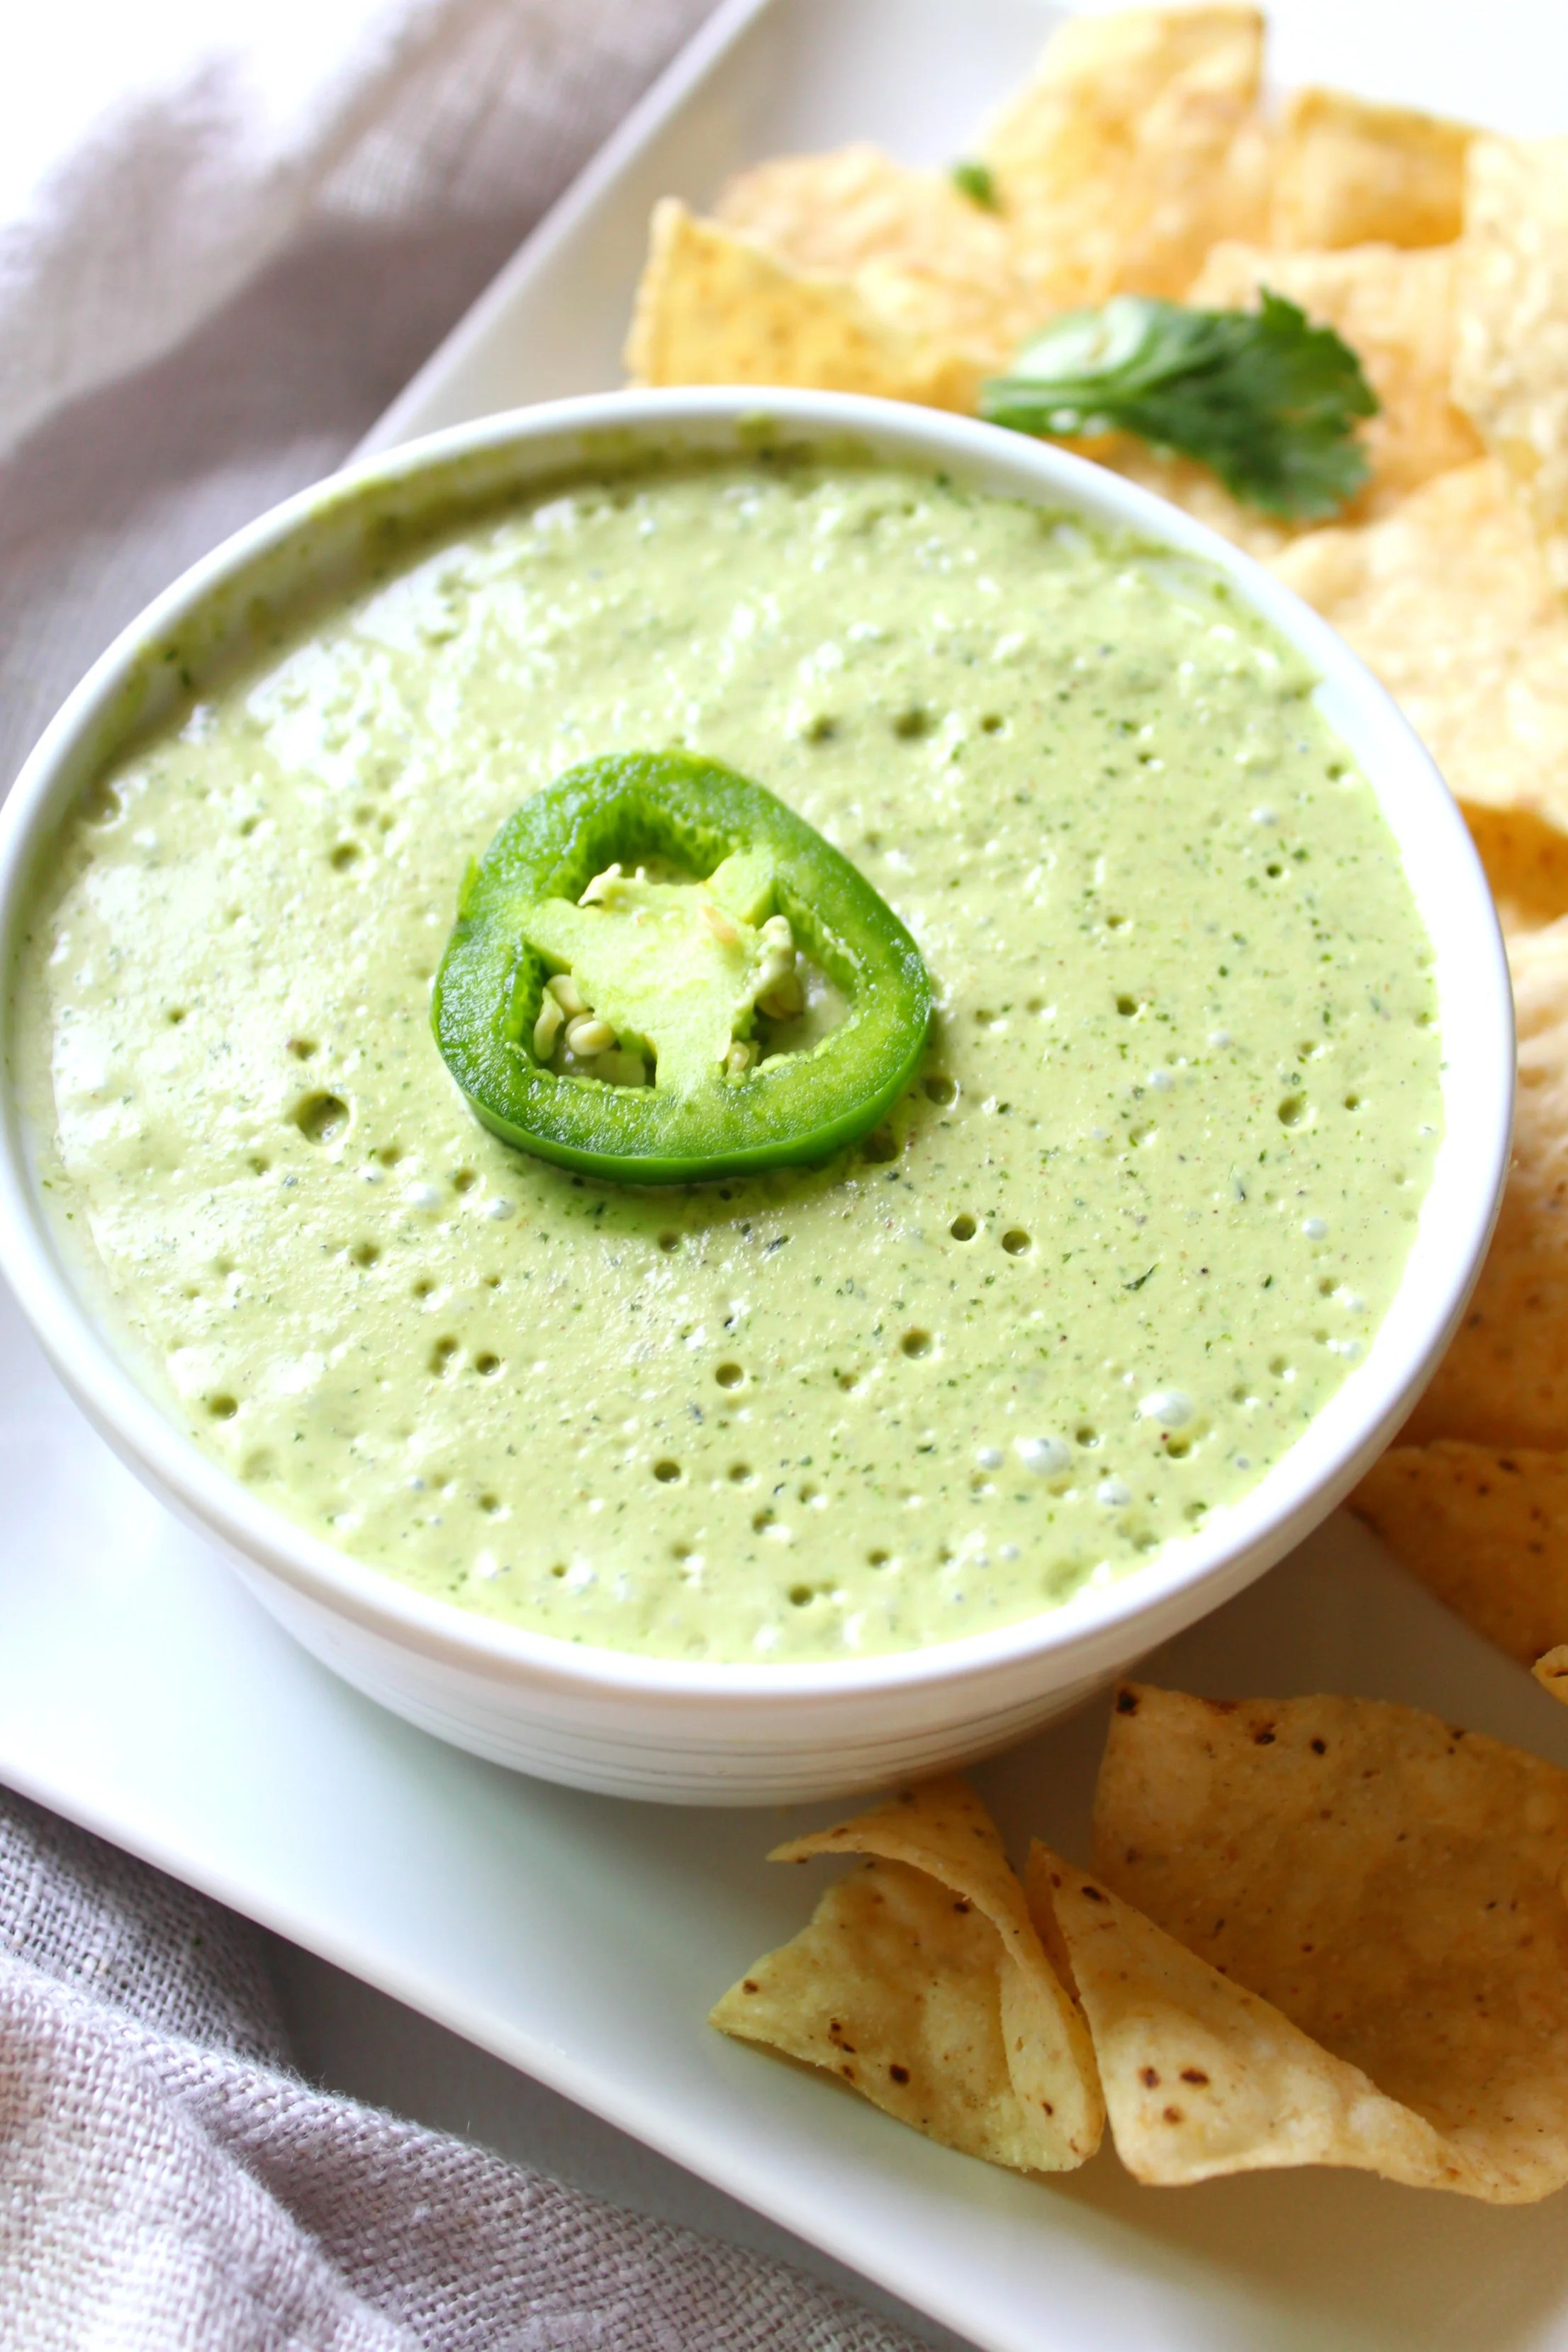 The perfect addition to tacos, nachos or enchiladas - this Vegan JalapeñoCream Sauce is packed full of flavor and heat   ThisSavoryVegan.com